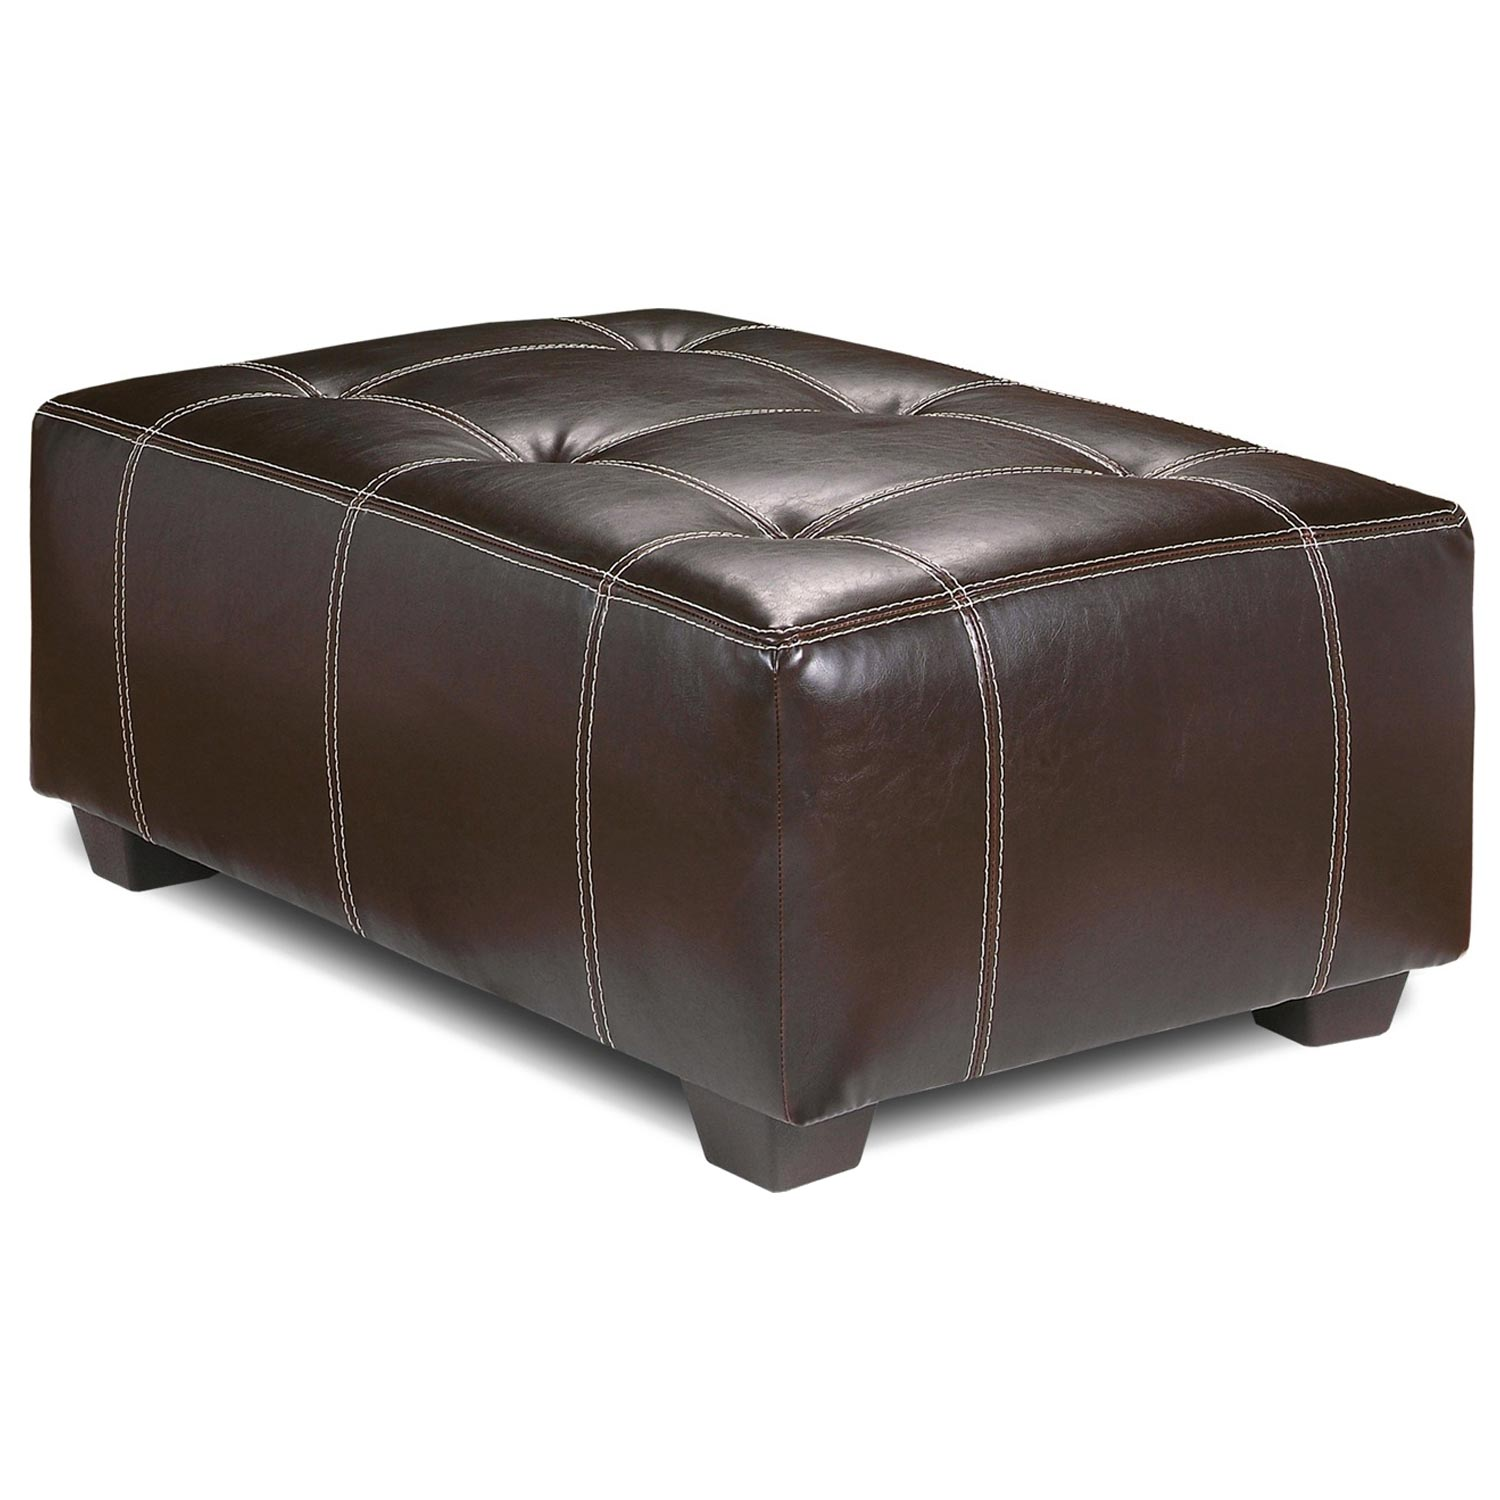 Upholstered Rectangular Ottoman - Contrast Stitching, Brown